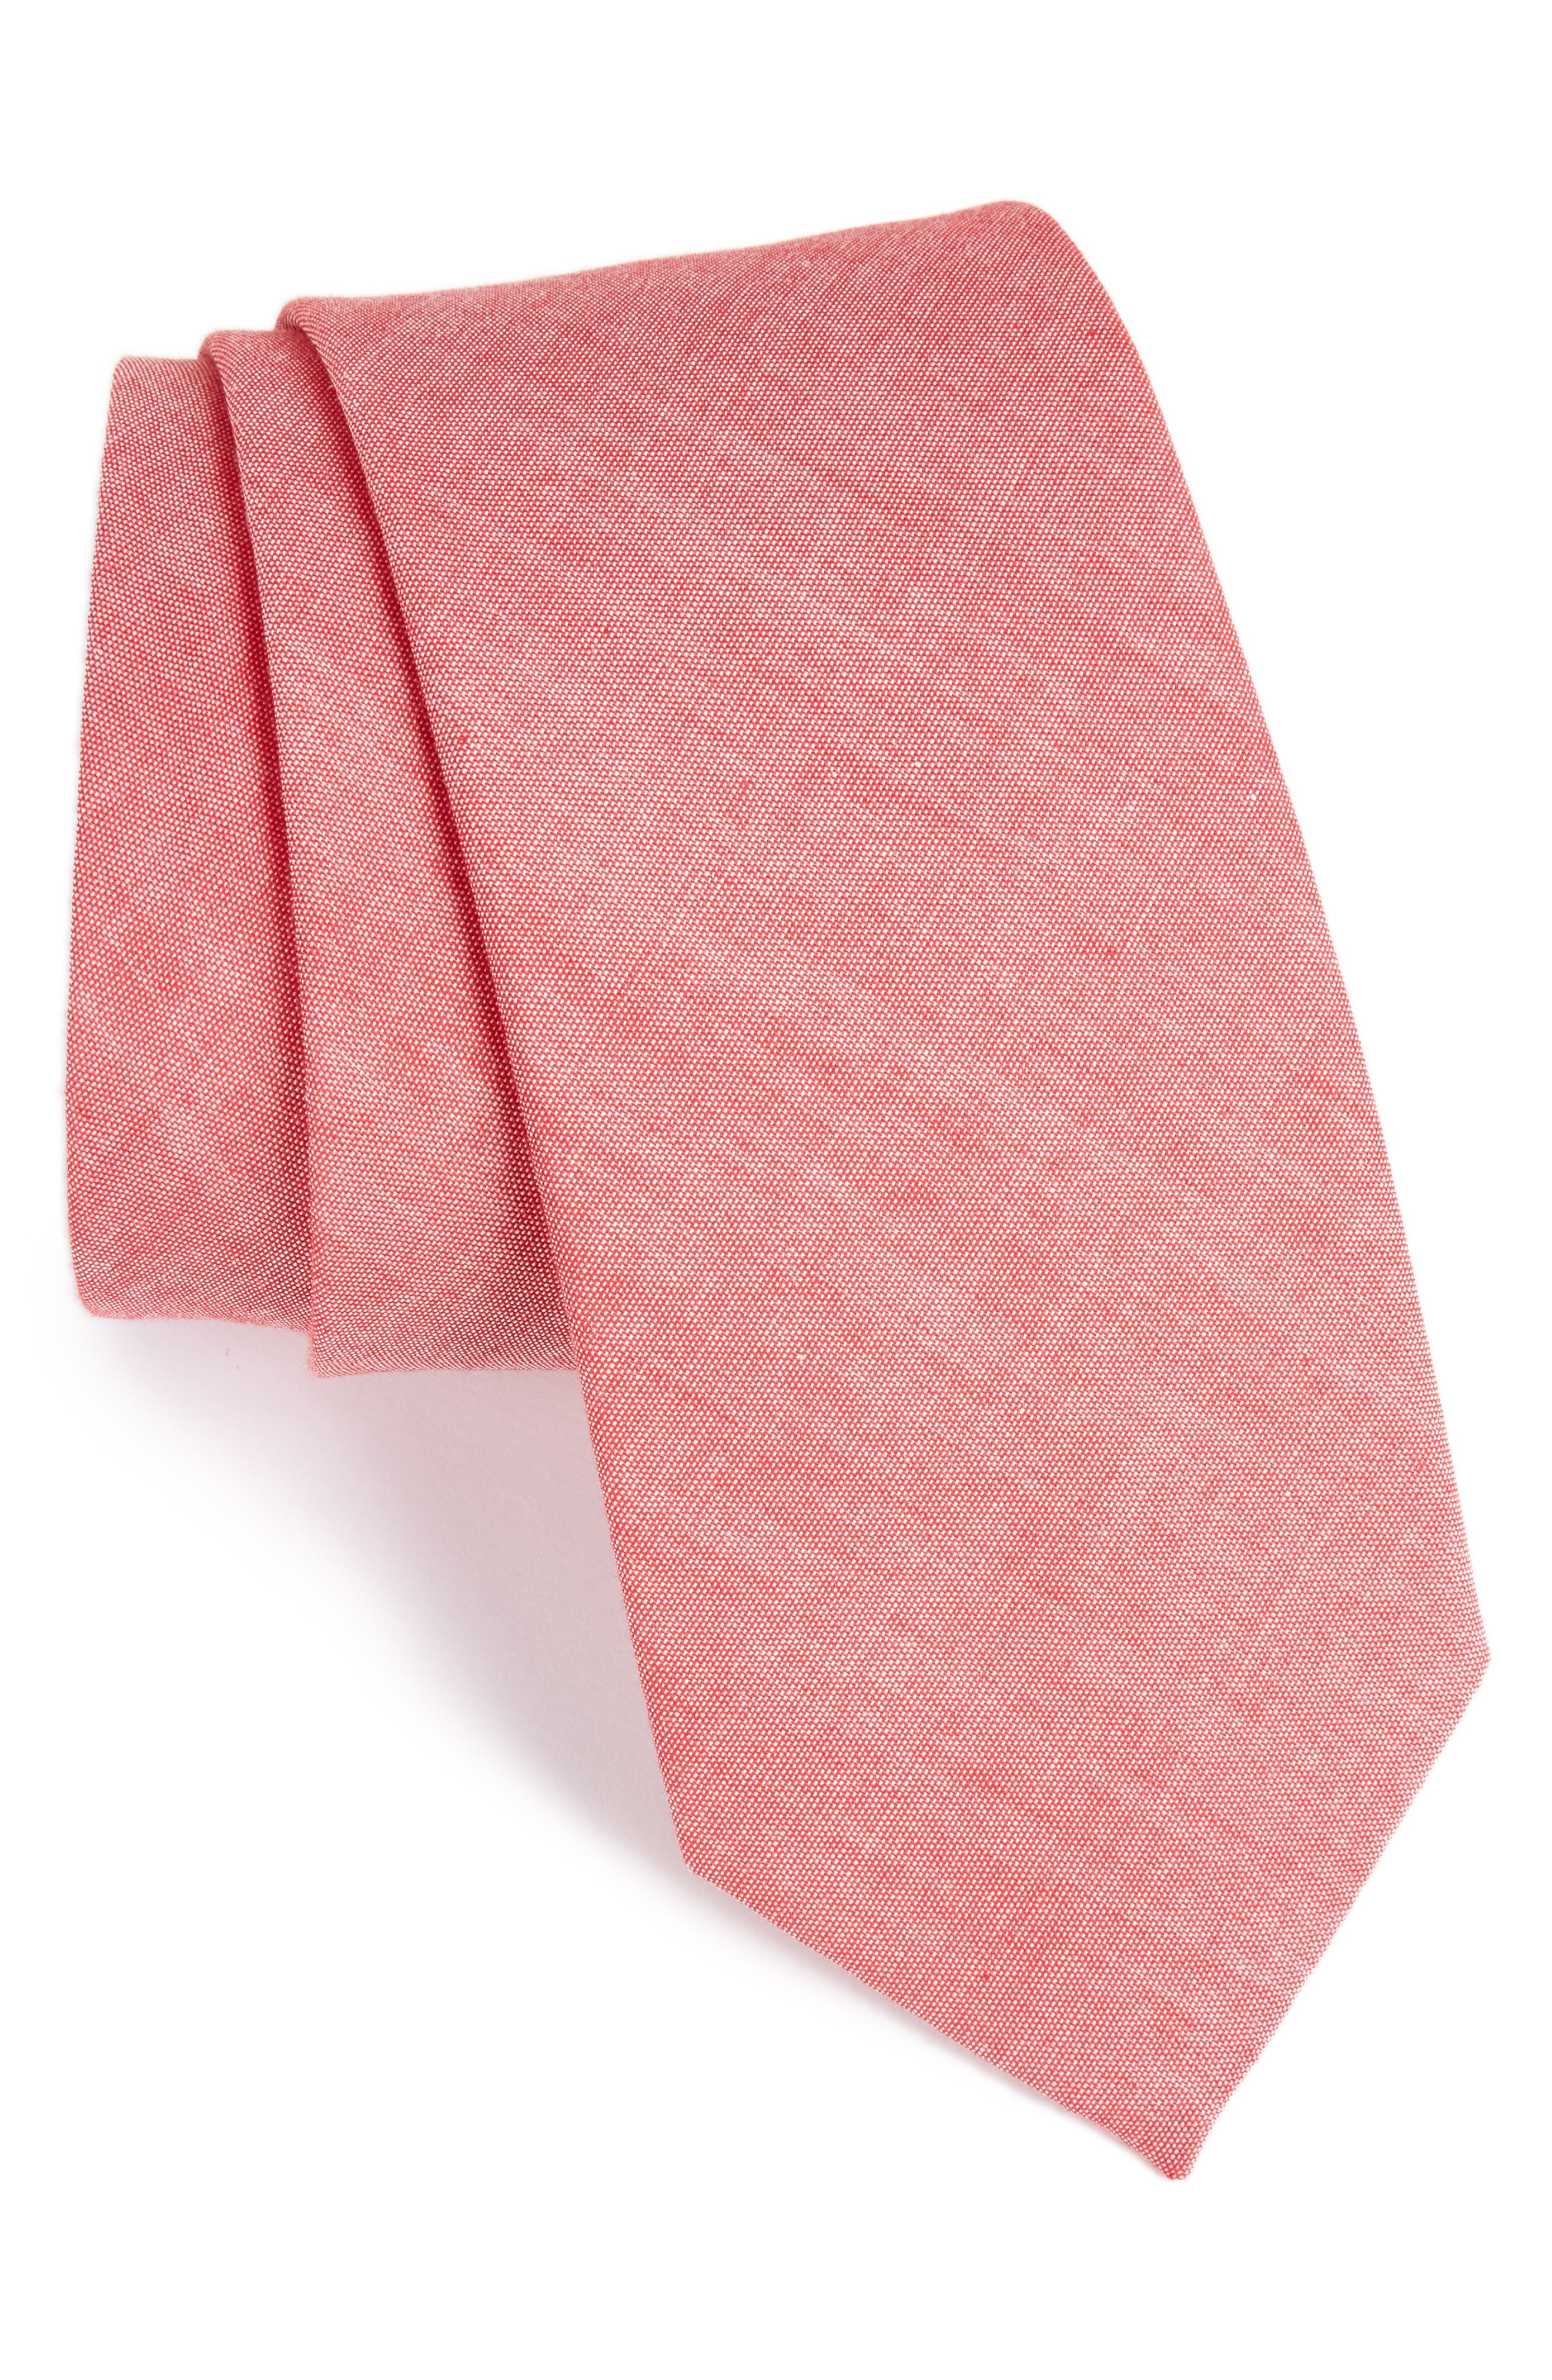 Classic Chambray Cotton Tie,                             Main thumbnail 3, color,